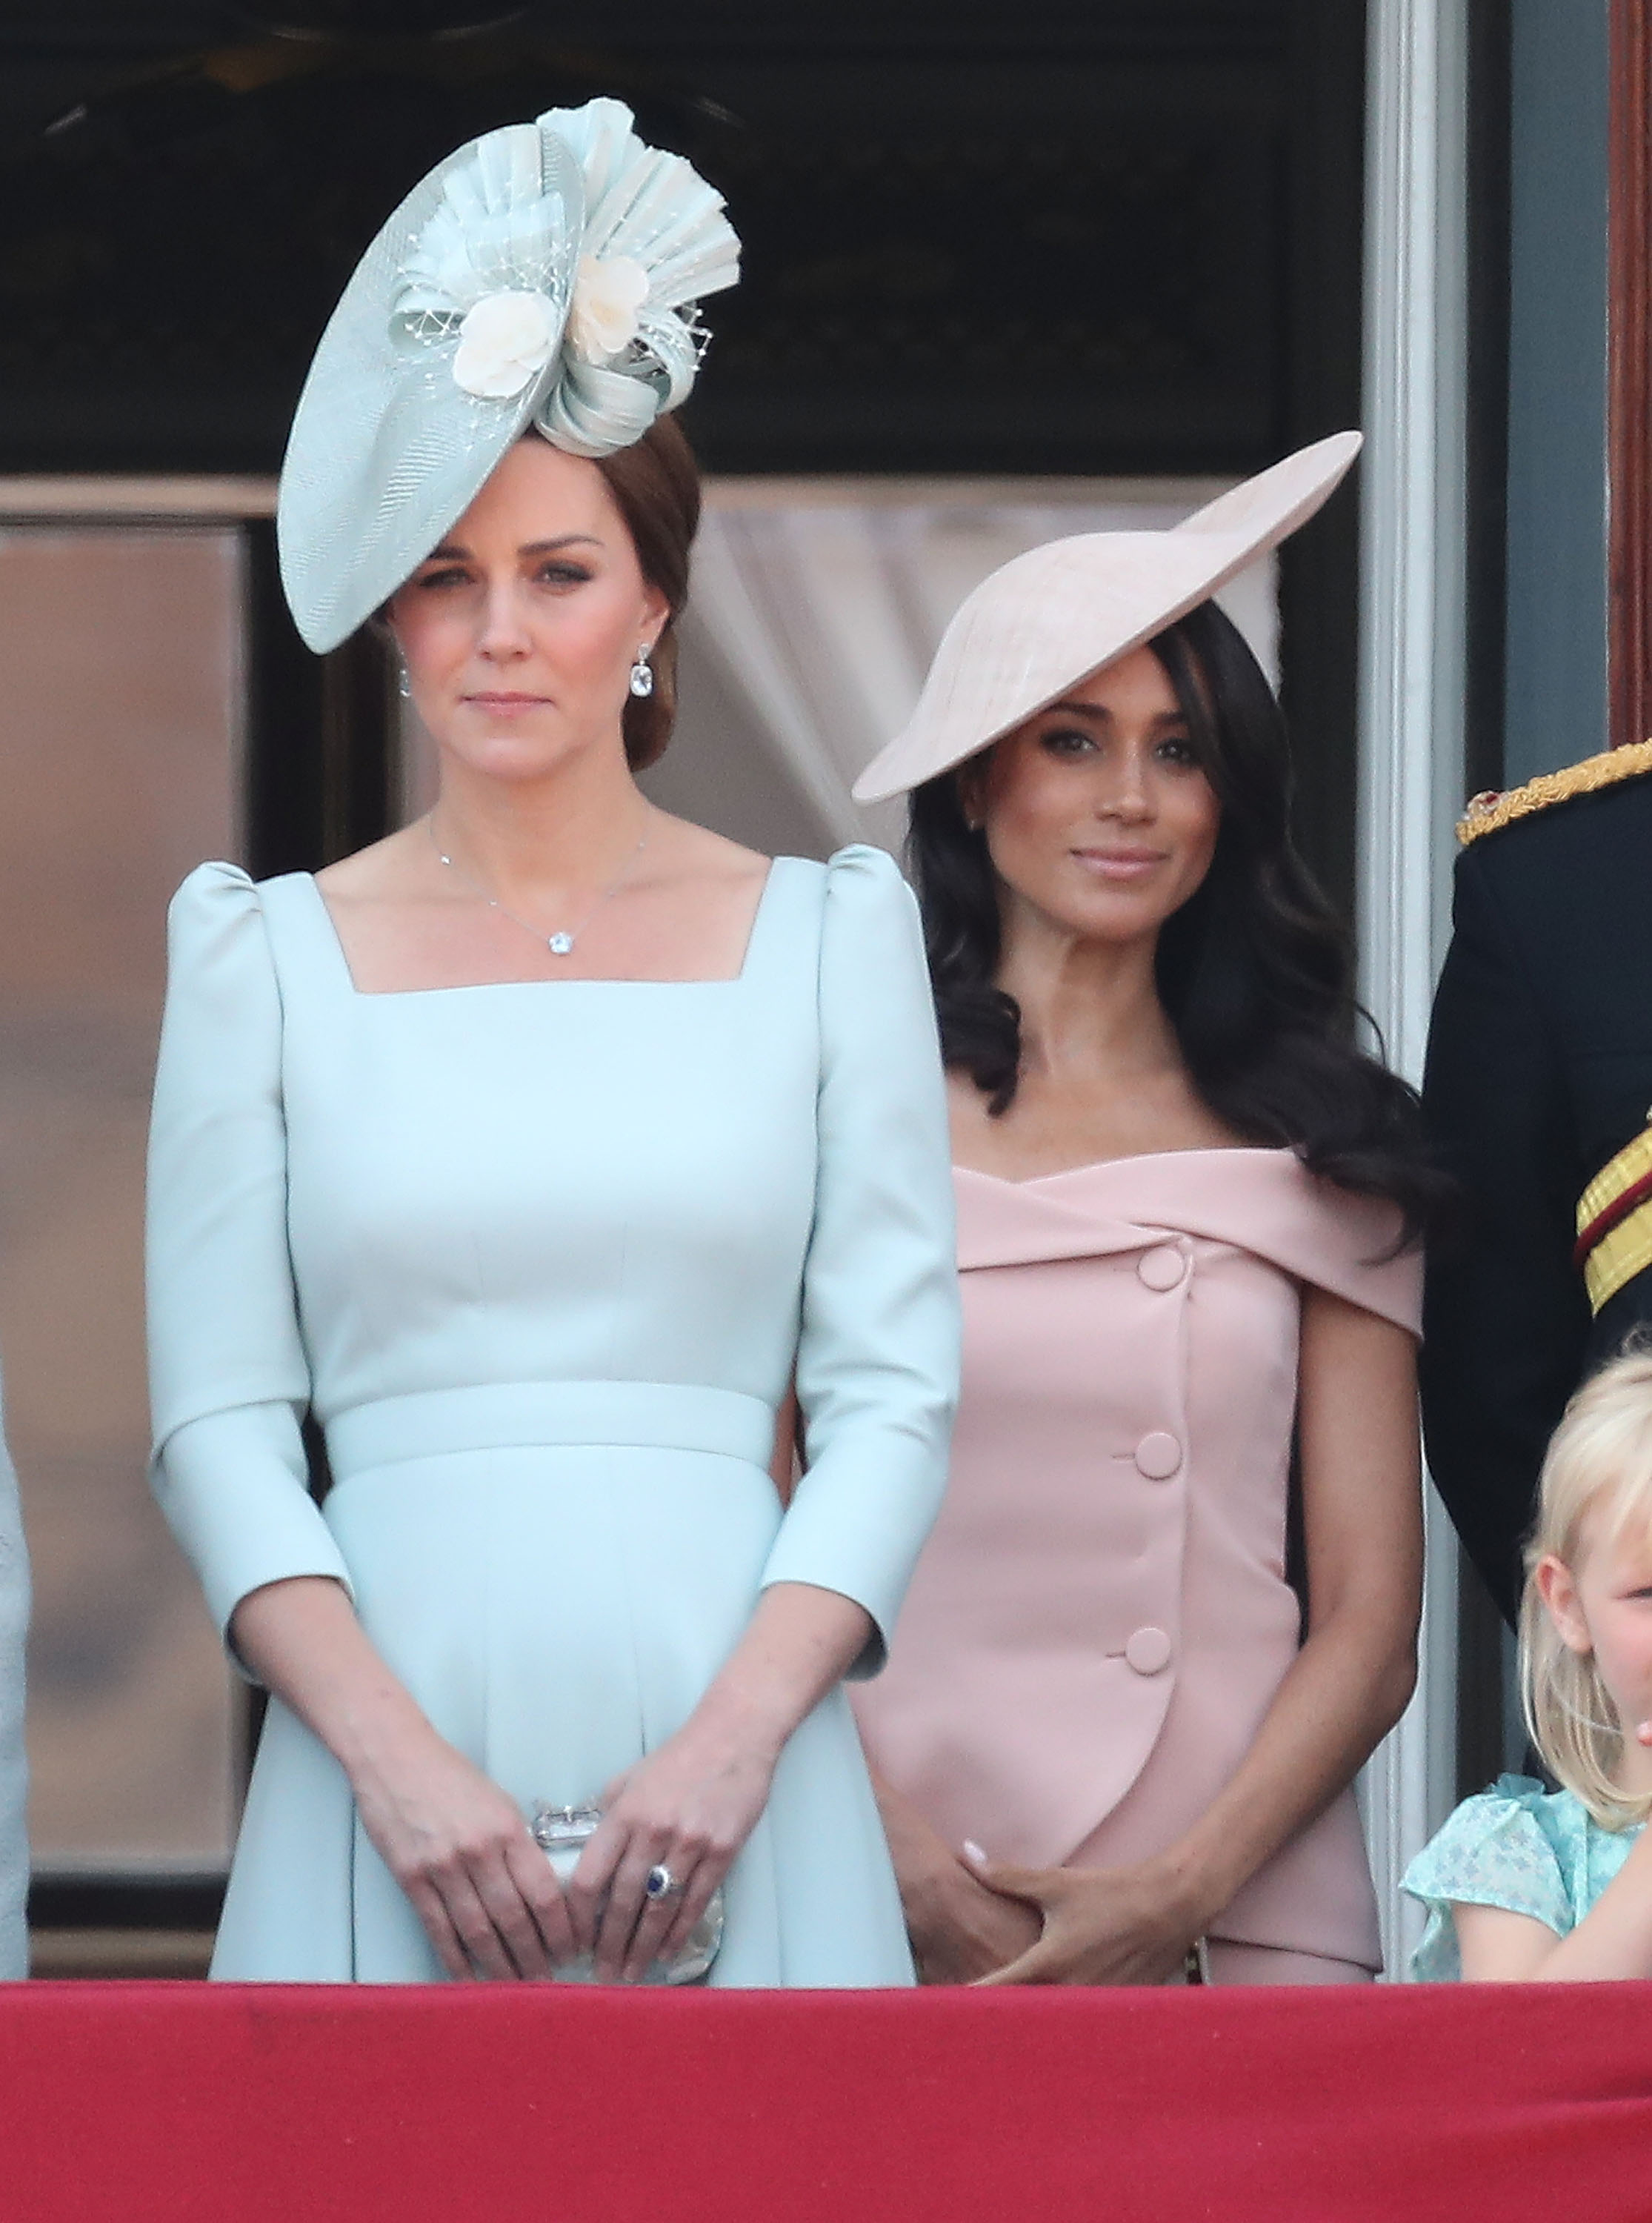 Catherine, Duchess of Cambridge, and Meghan, Duchess of Sussex, on the balcony of Buckingham Palace during Trooping The Colour on June 9, 2018, in London, England. (Getty Images)